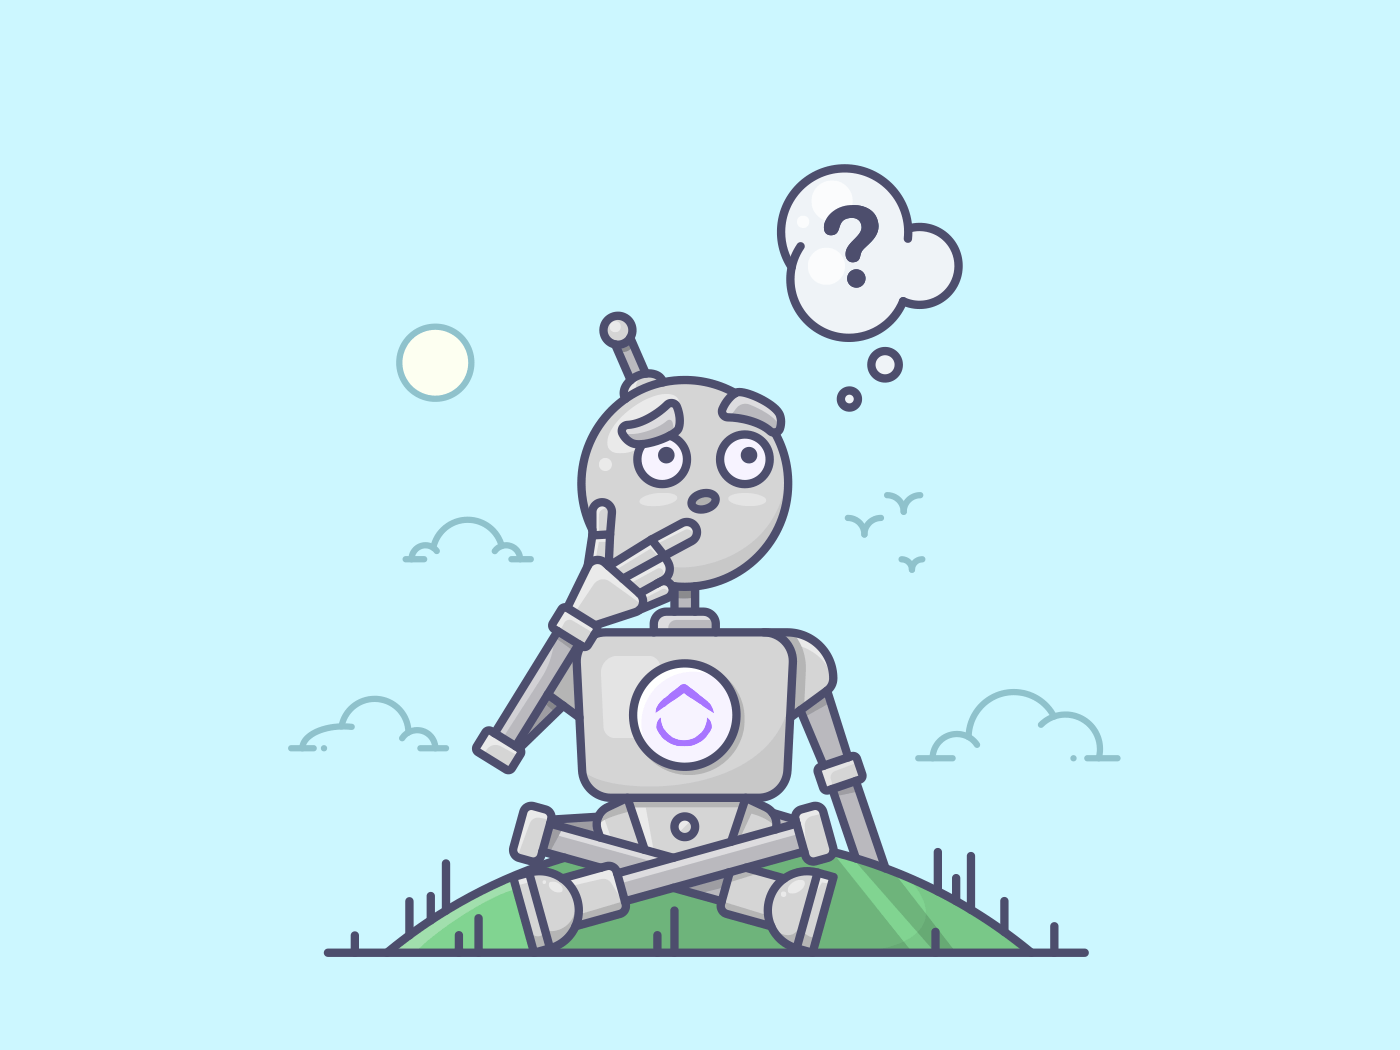 Machine Learning (ML) vs Artificial Intelligence (AI) – What's the difference?